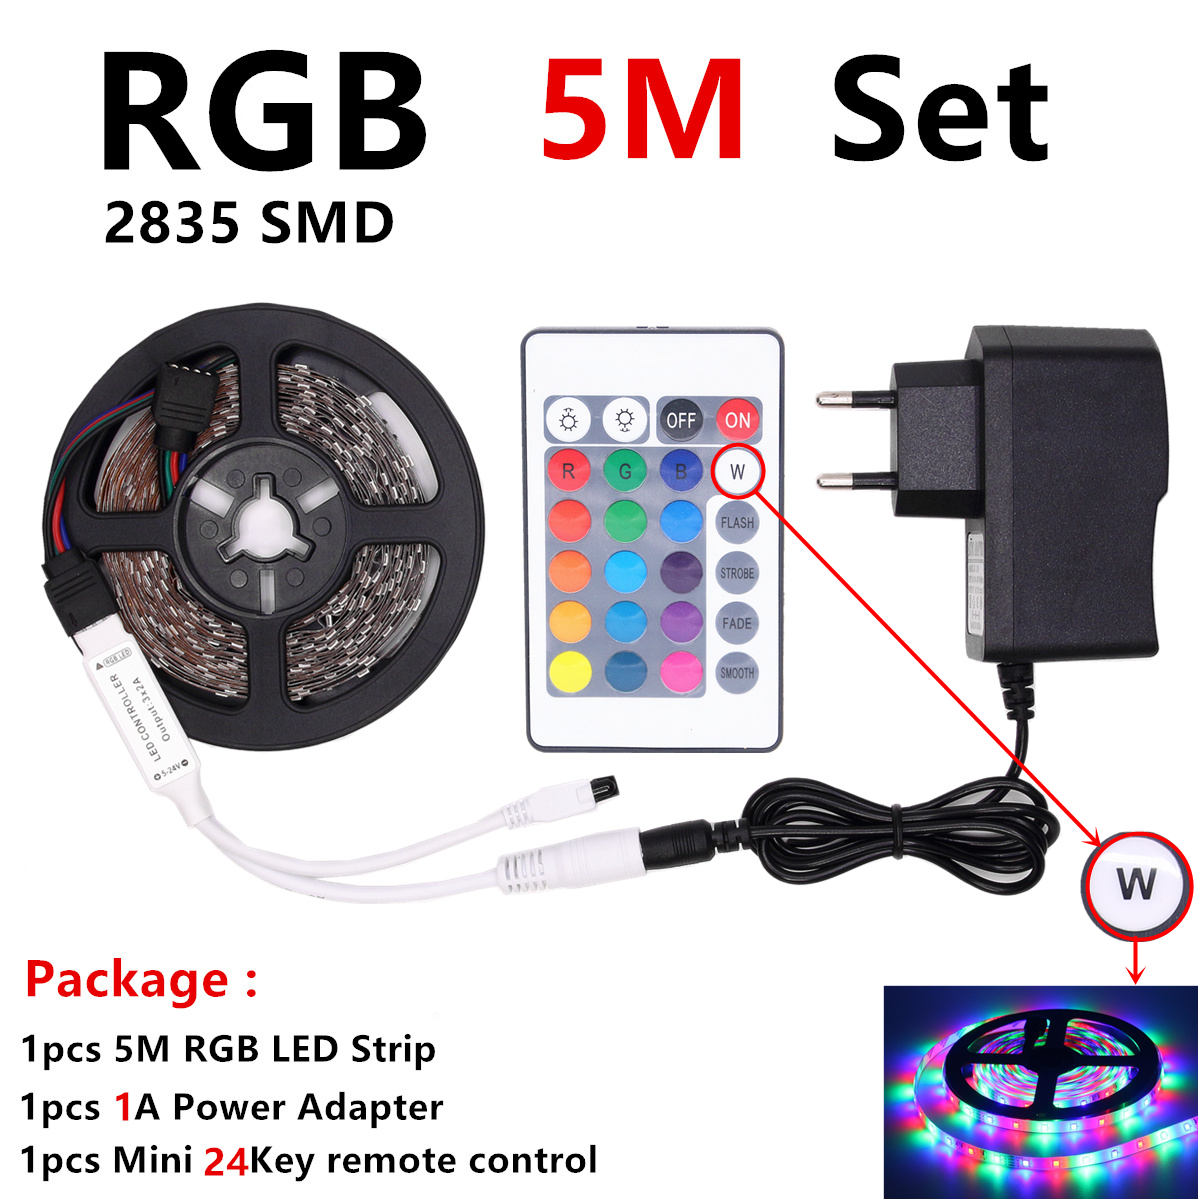 HTB10e8oXvWG3KVjSZPcq6zkbXXa9 RGB LED Strip Waterproof 2835 5M 10M DC12V Fita LED Light Strip Neon LED 12V Flexible Tape Ledstrip With Controller and Adapter